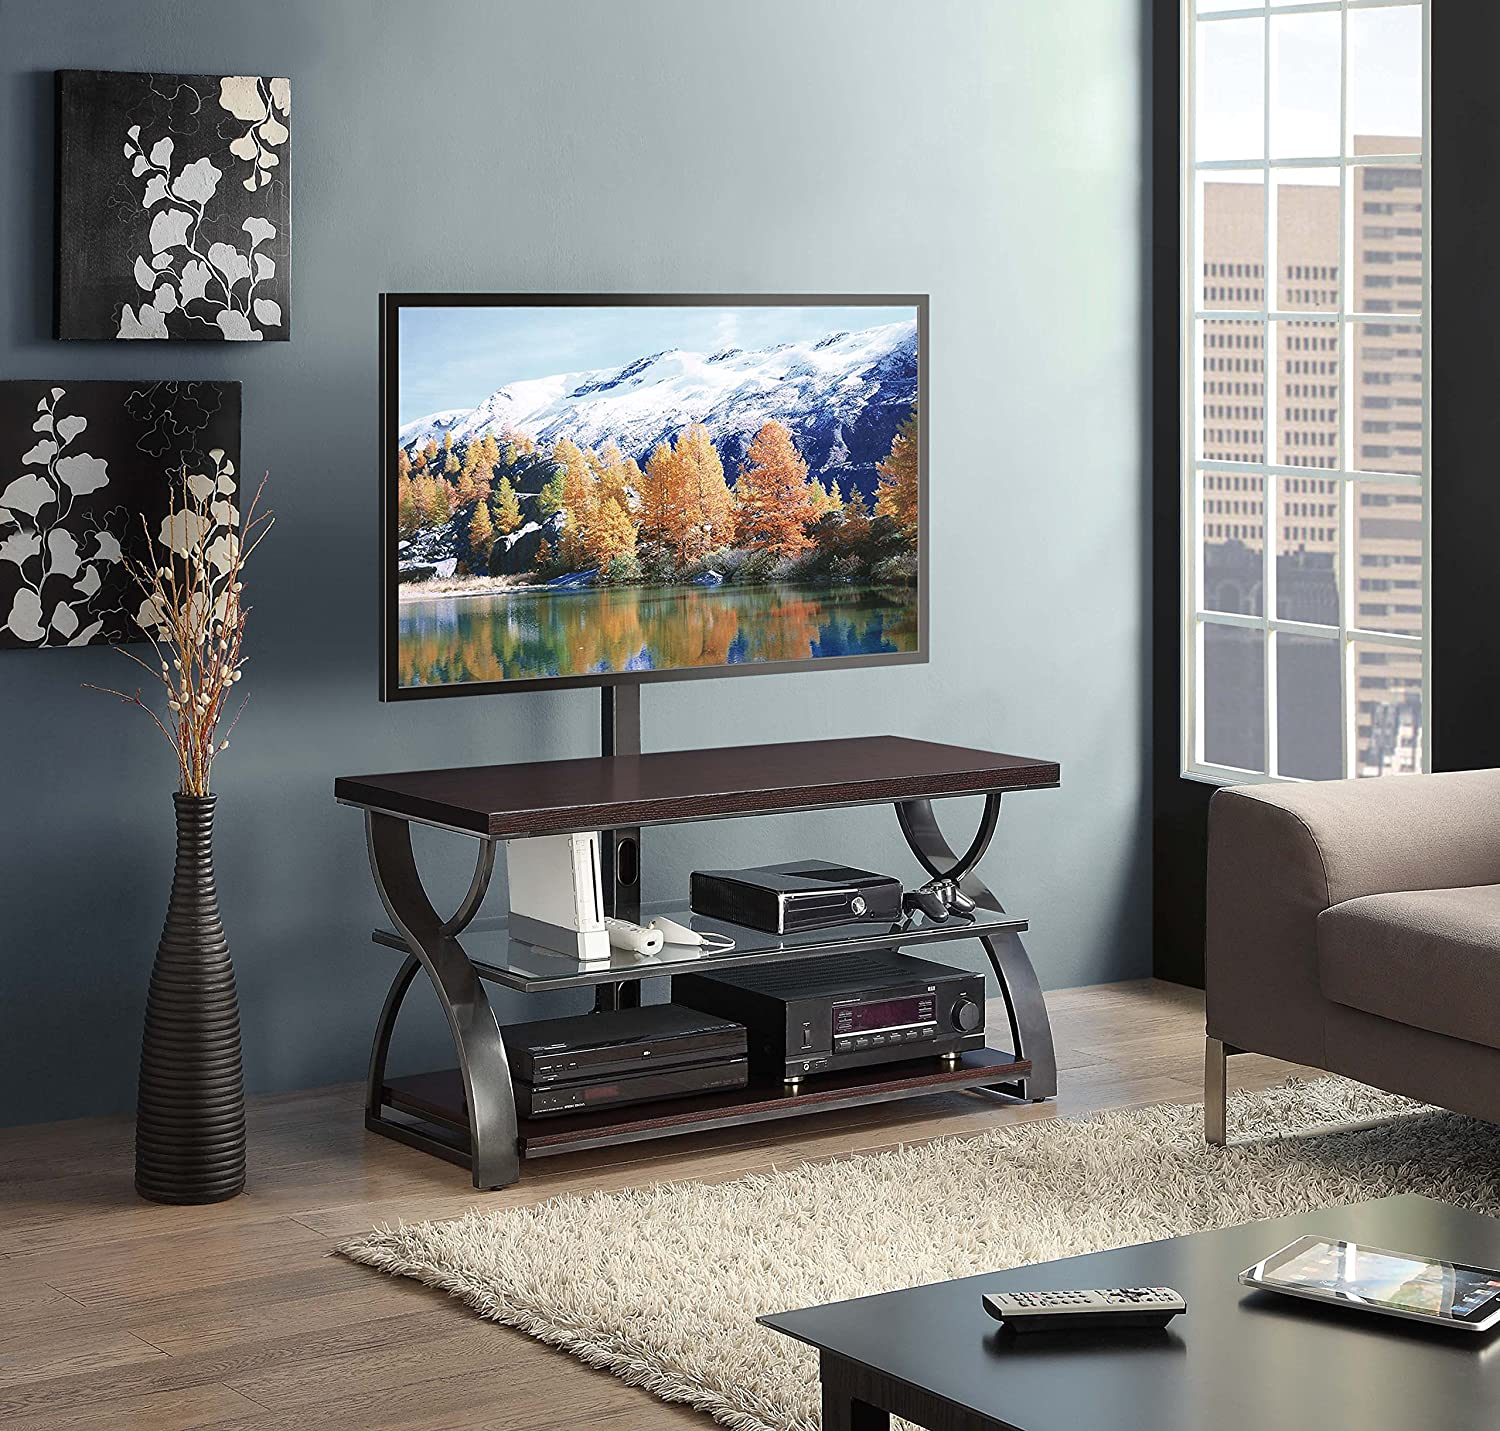 The 5 Best TV Stands In 2021: Reviews & Buying Guide 6